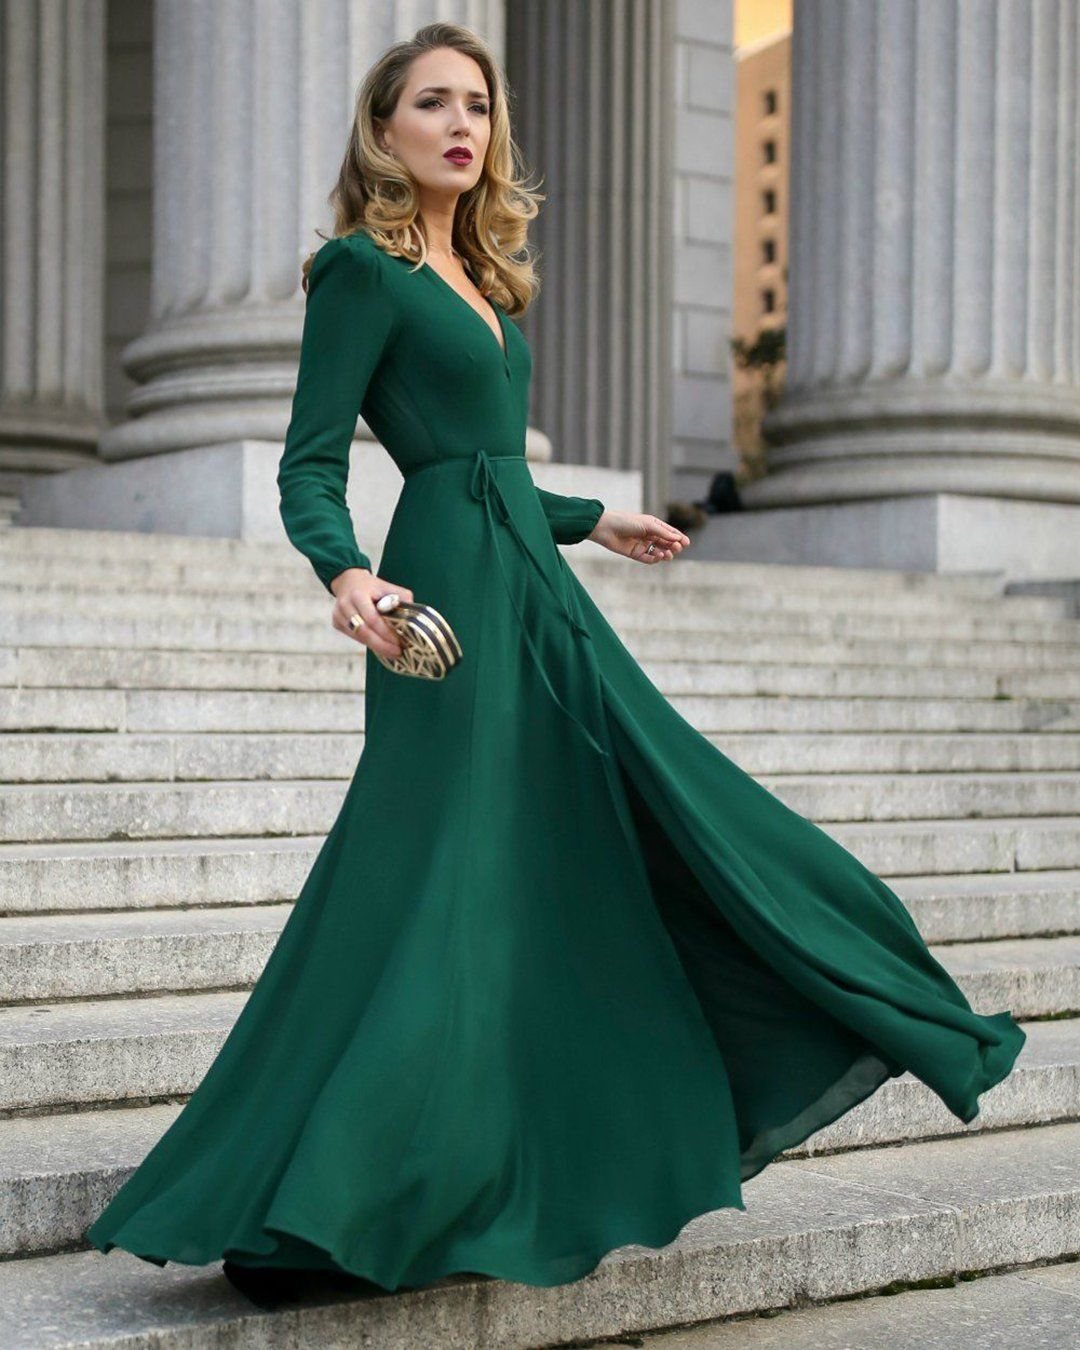 30 Wedding Guest Dresses For Every Seasons Style Trendy Dresses Maxi Dress With Sleeves Guest Dresses [ 1350 x 1080 Pixel ]